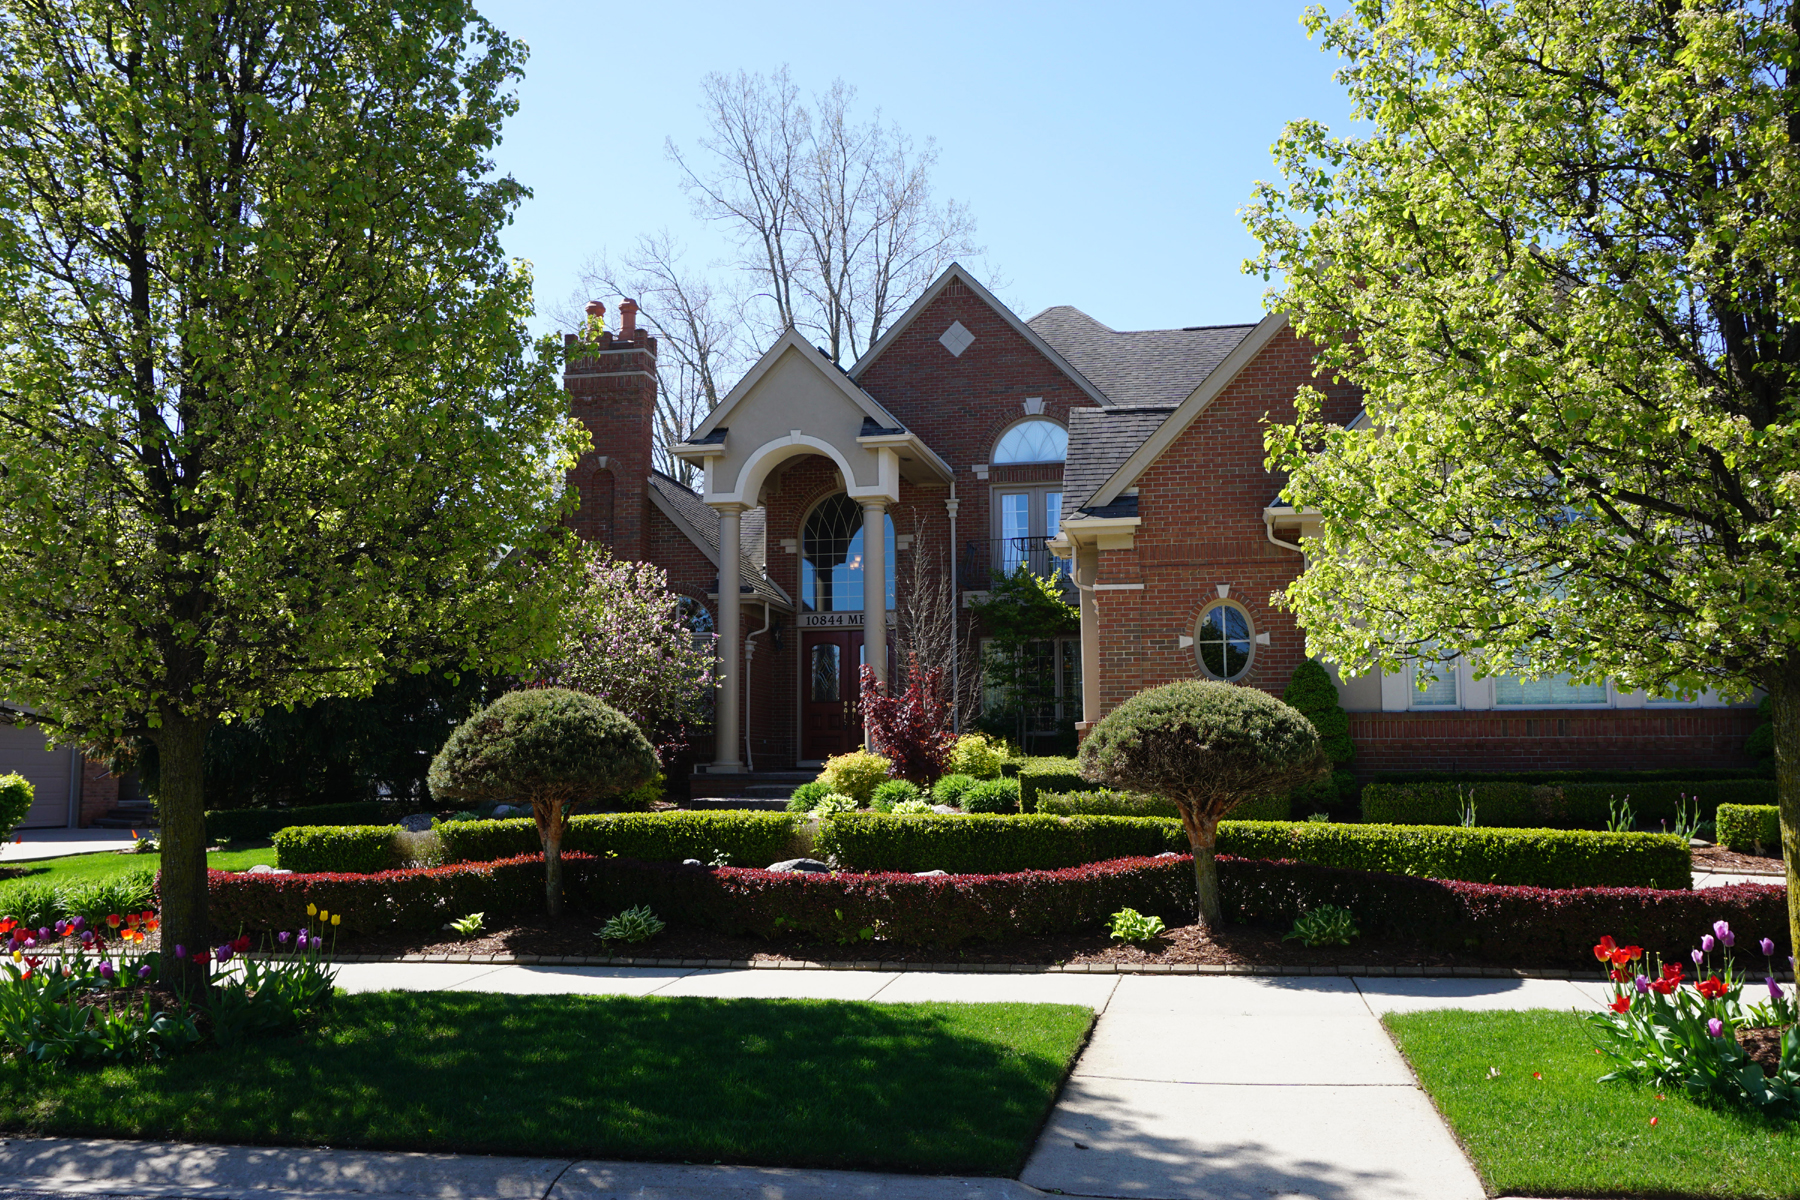 Single Family Home for Sale at Shelby Township 10844 Melia Drive Shelby Township, Michigan, 48315 United States